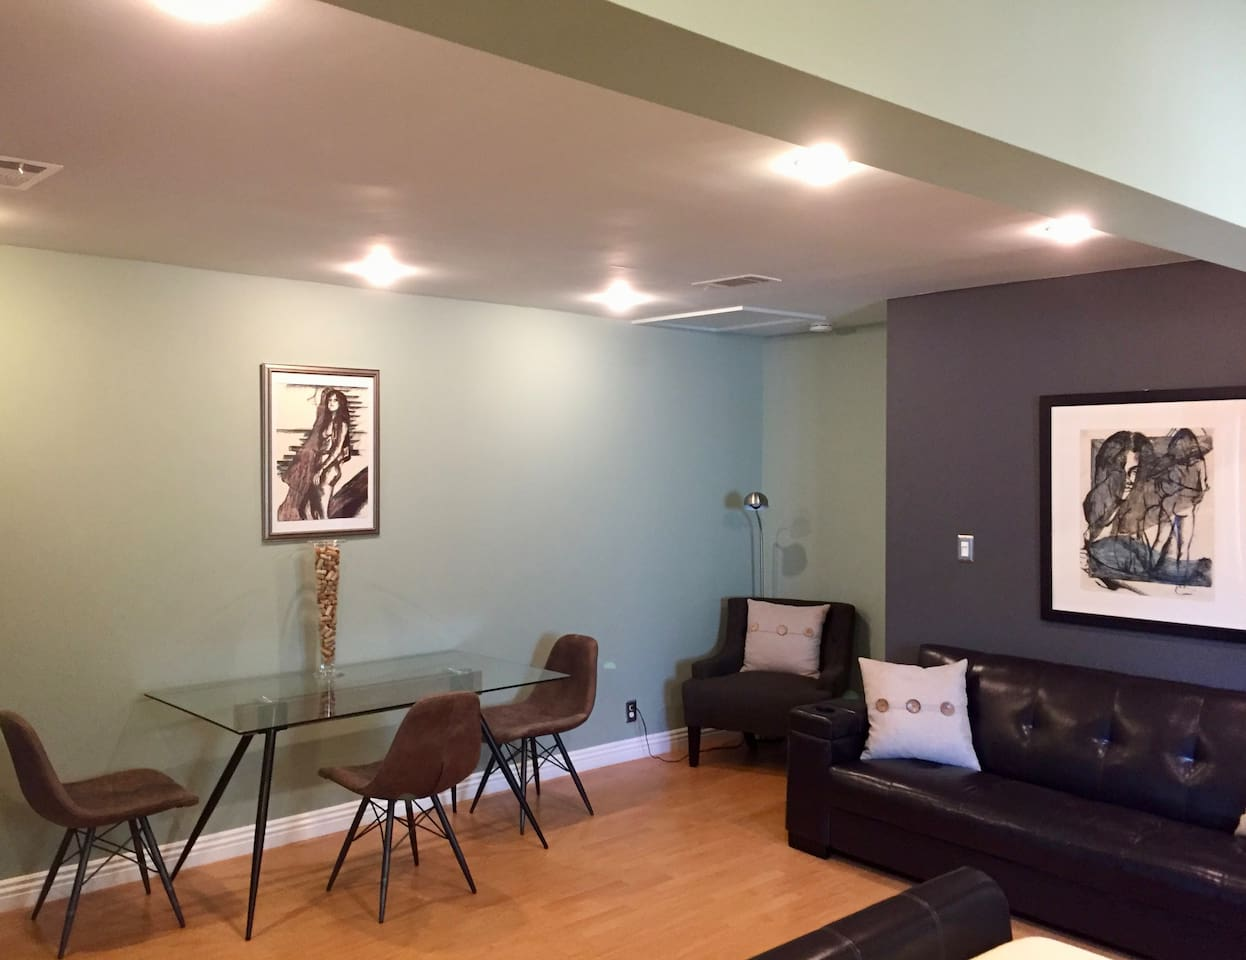 Style, comfort, and all the amenities you need to have a wonderful time in Los Angeles